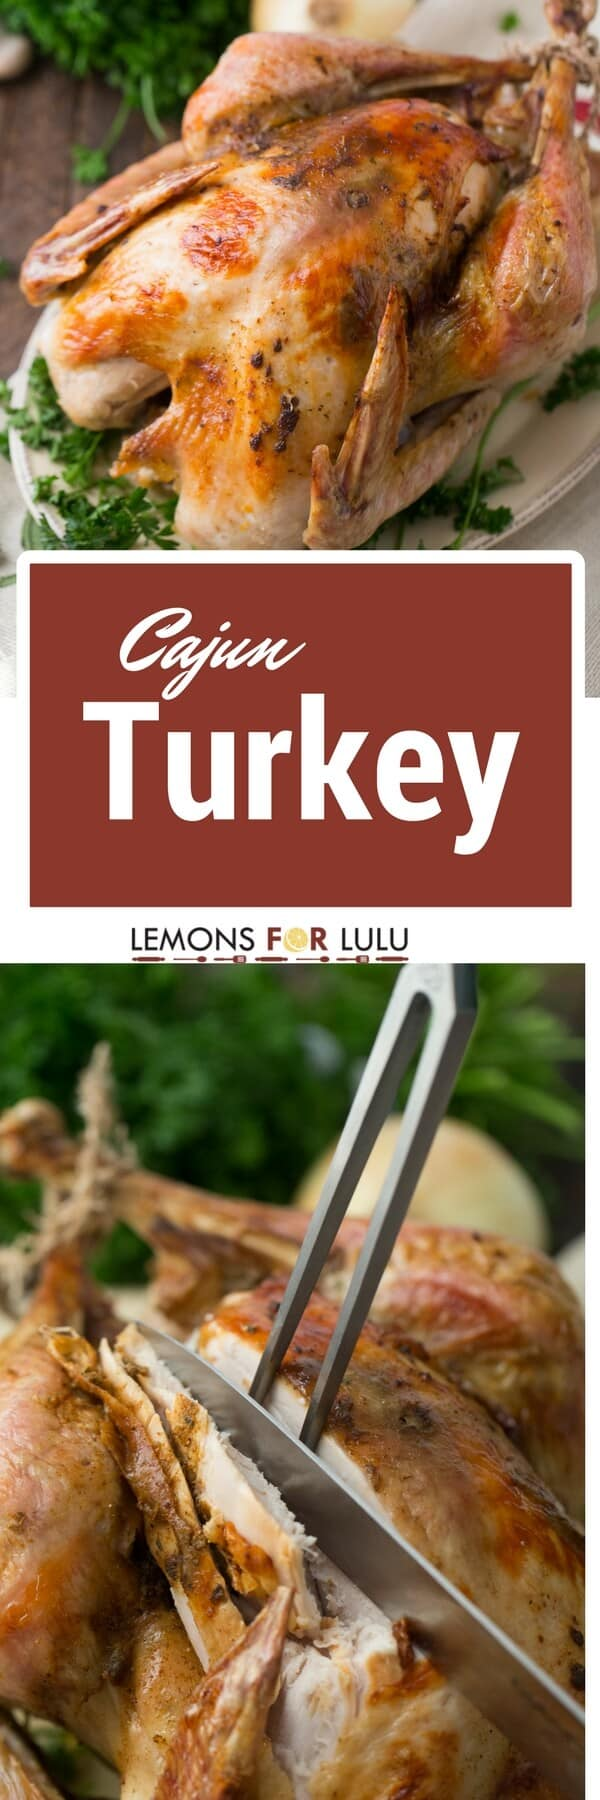 This Cajun turkey shines with spice and flavor! The meat itself is s tender and delicious, you are going to want to be sure you have leftovers!